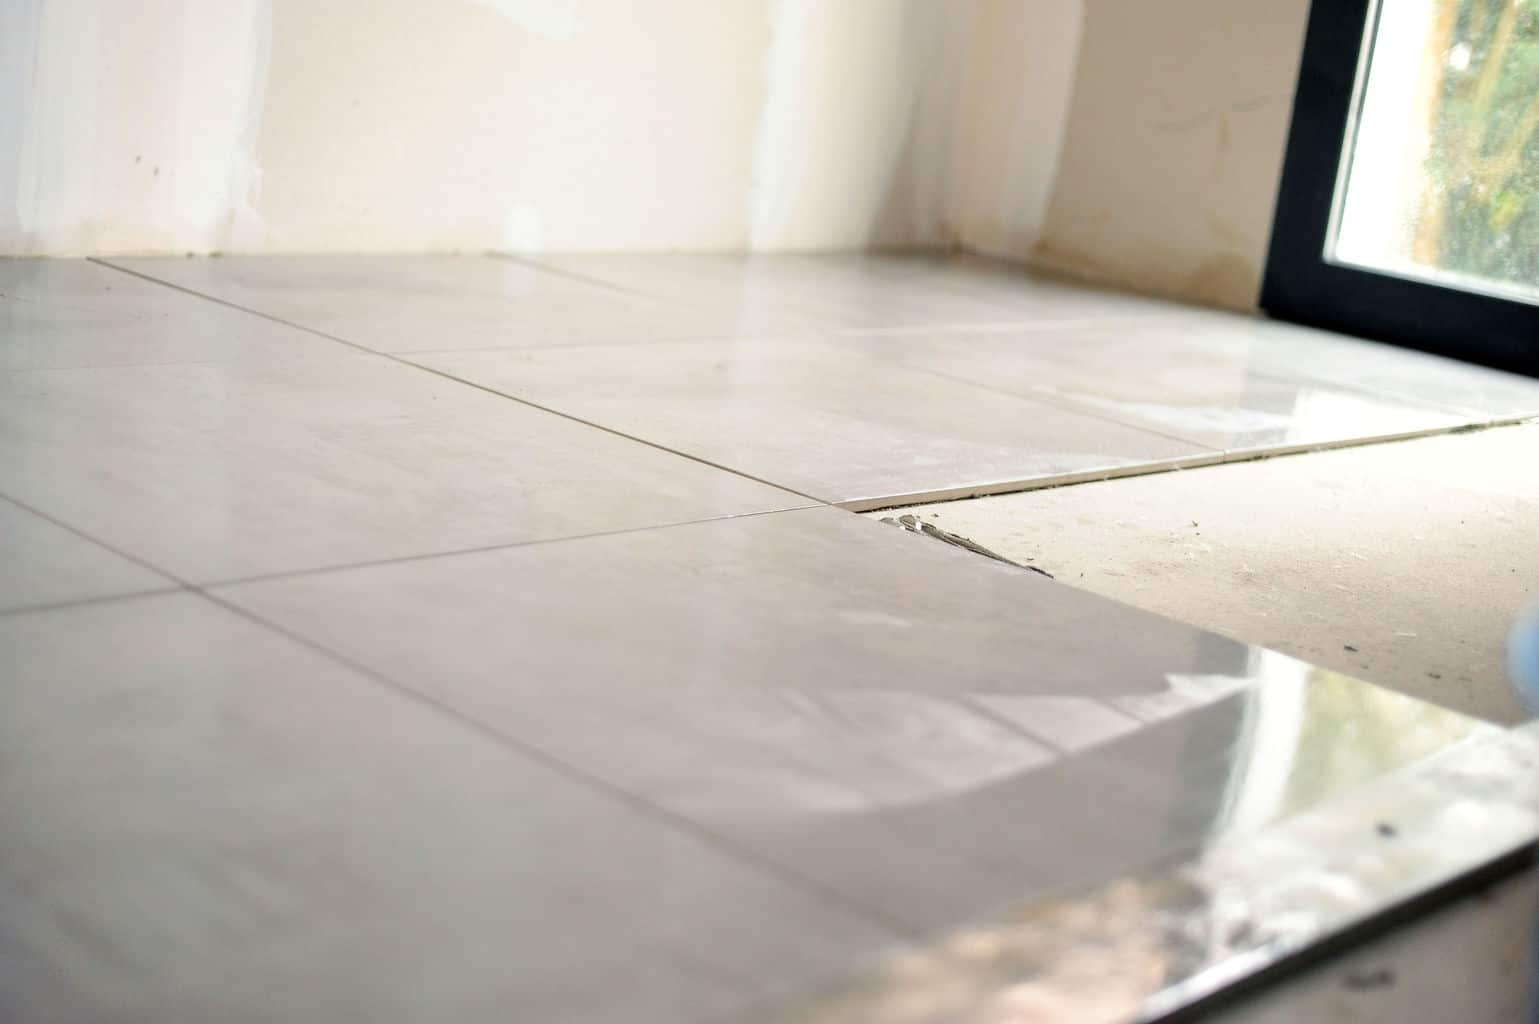 How To Install Ceramic Floor Tile On Concrete (DIY Tips)